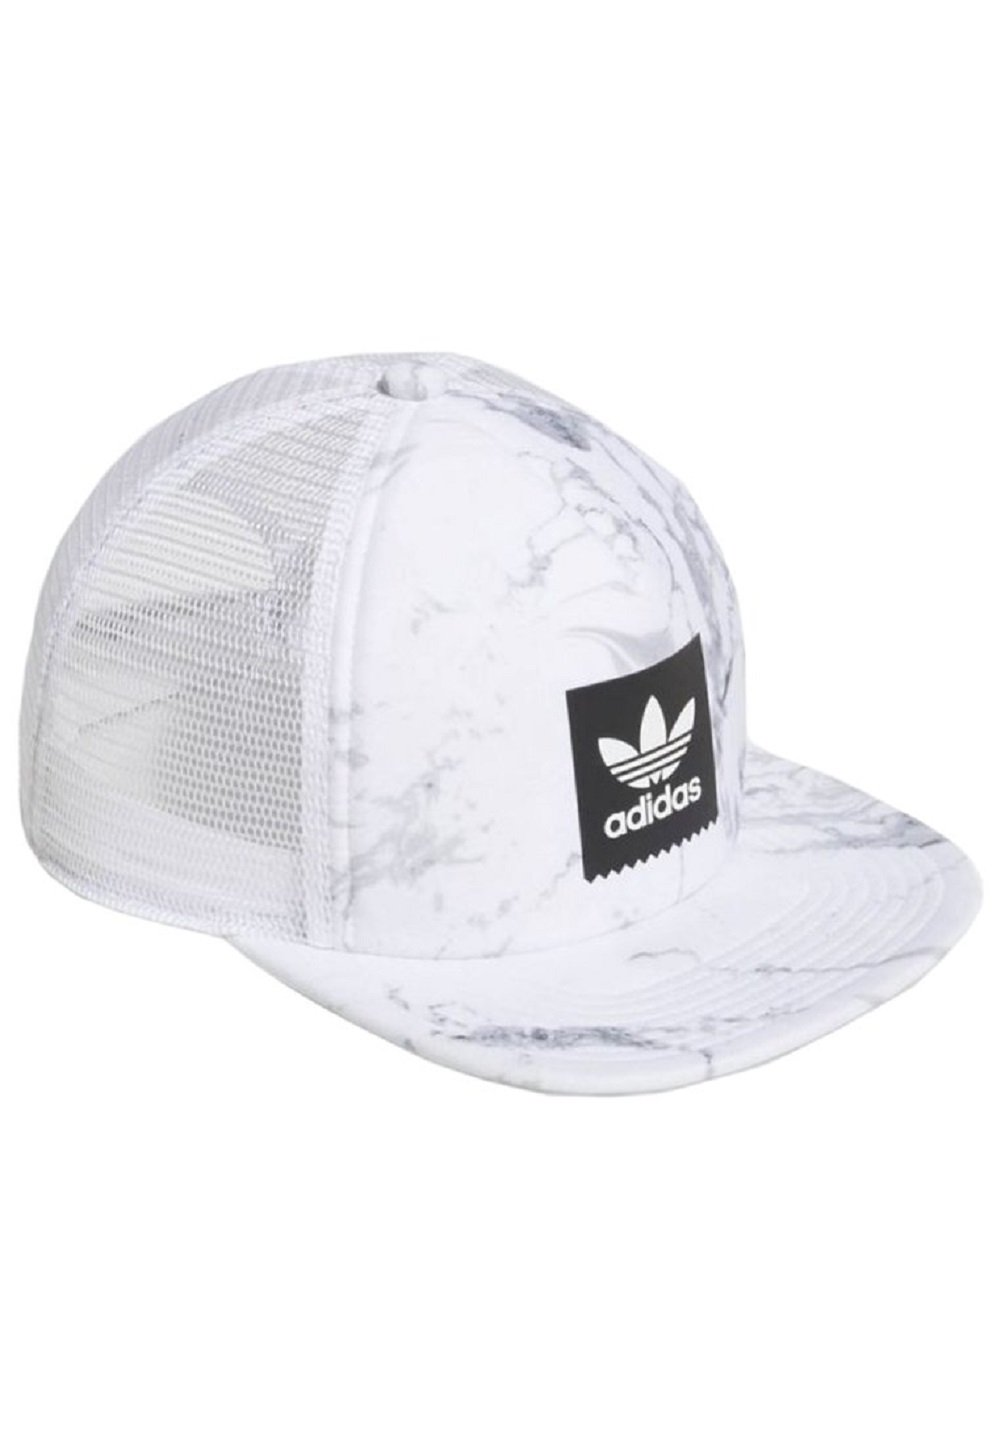 adidas Men's Trucker Marble Hat, Multi-Colour, One Size DH2584